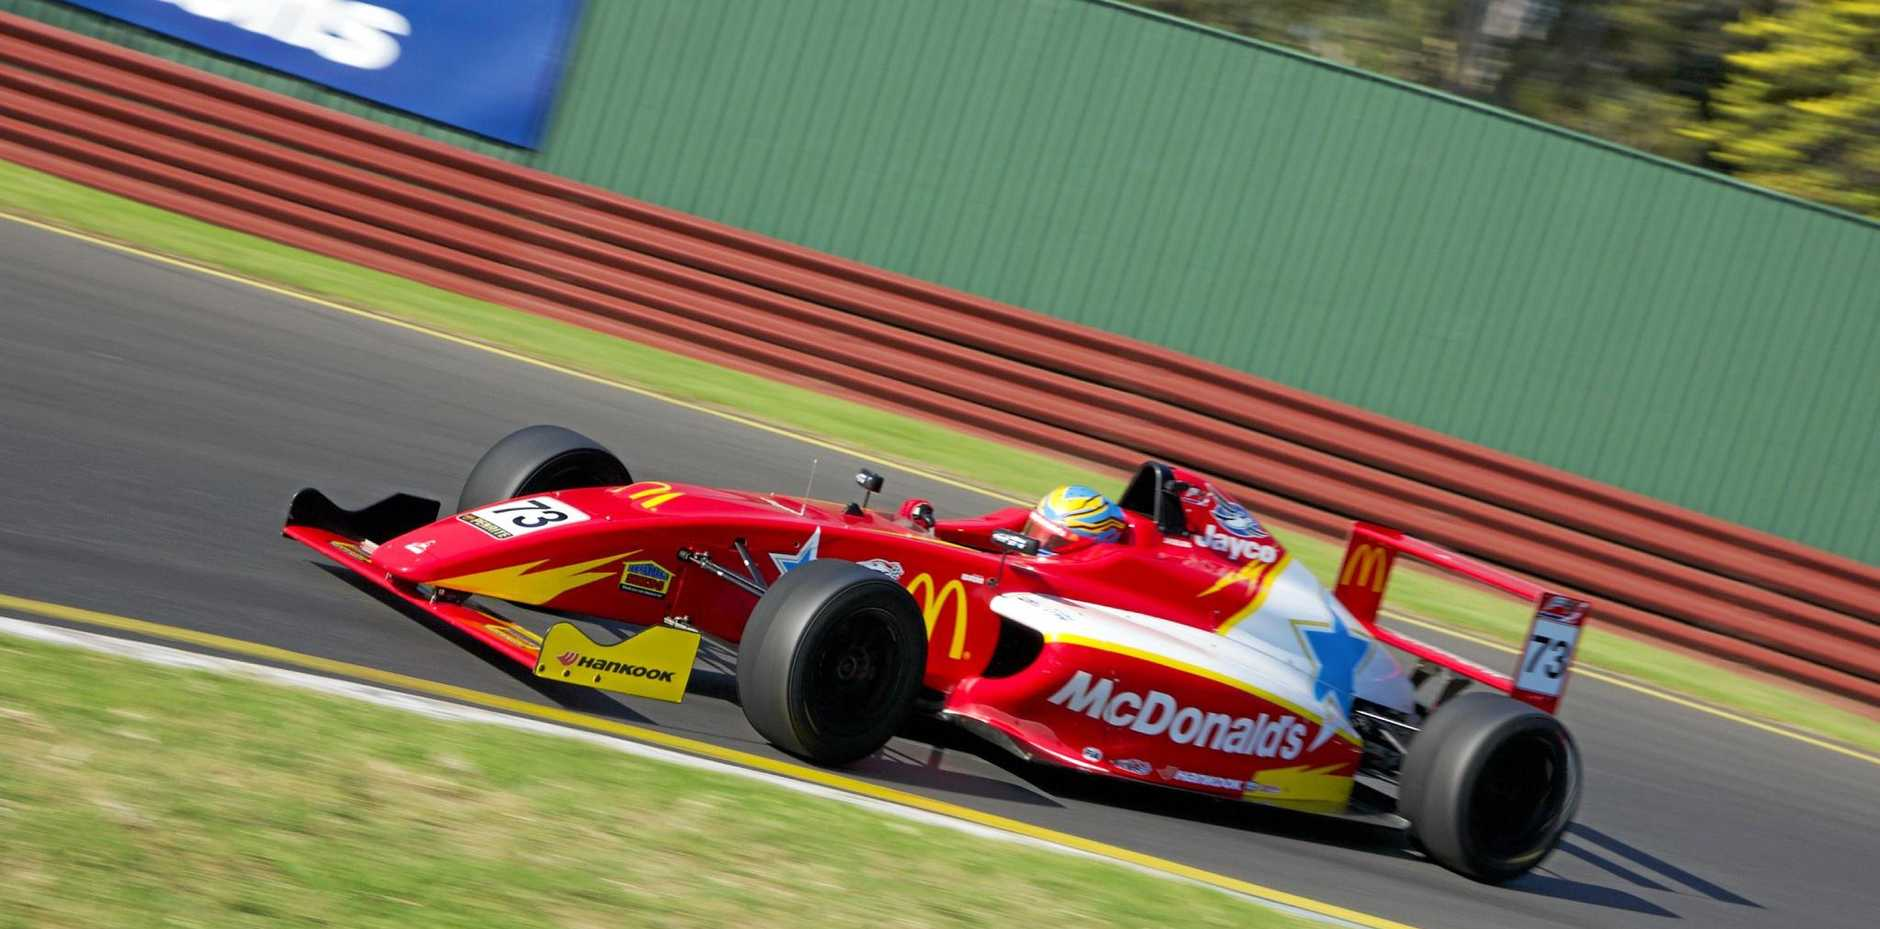 ON TRACK: Toowoomba driver Cameron Shields races in the Australian Formula 4 Championship.